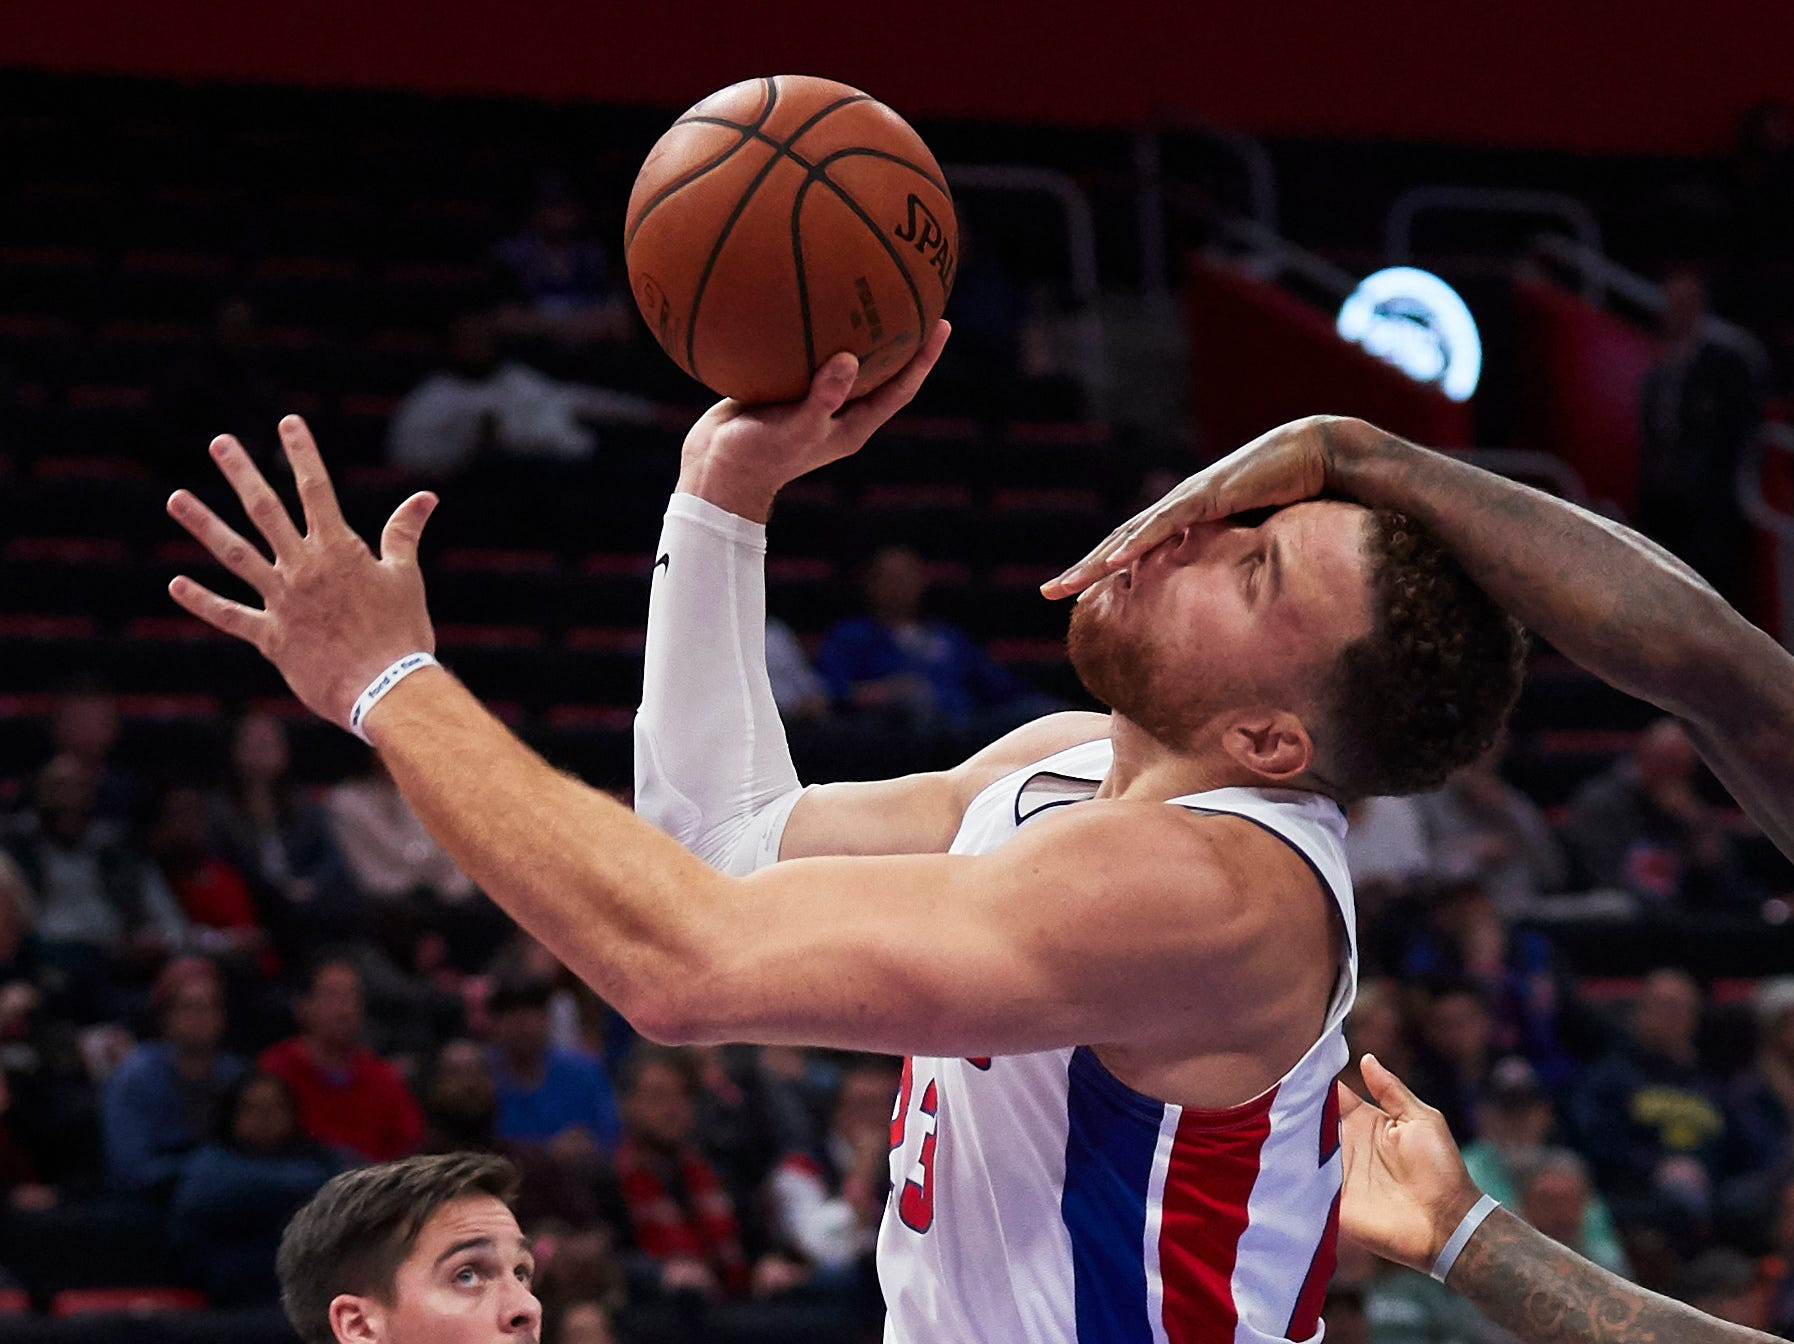 Oct. 23: Pistons forward Blake Griffin takes a hard foul on his way to the hoop during the second half against the 76ers in Detroit.